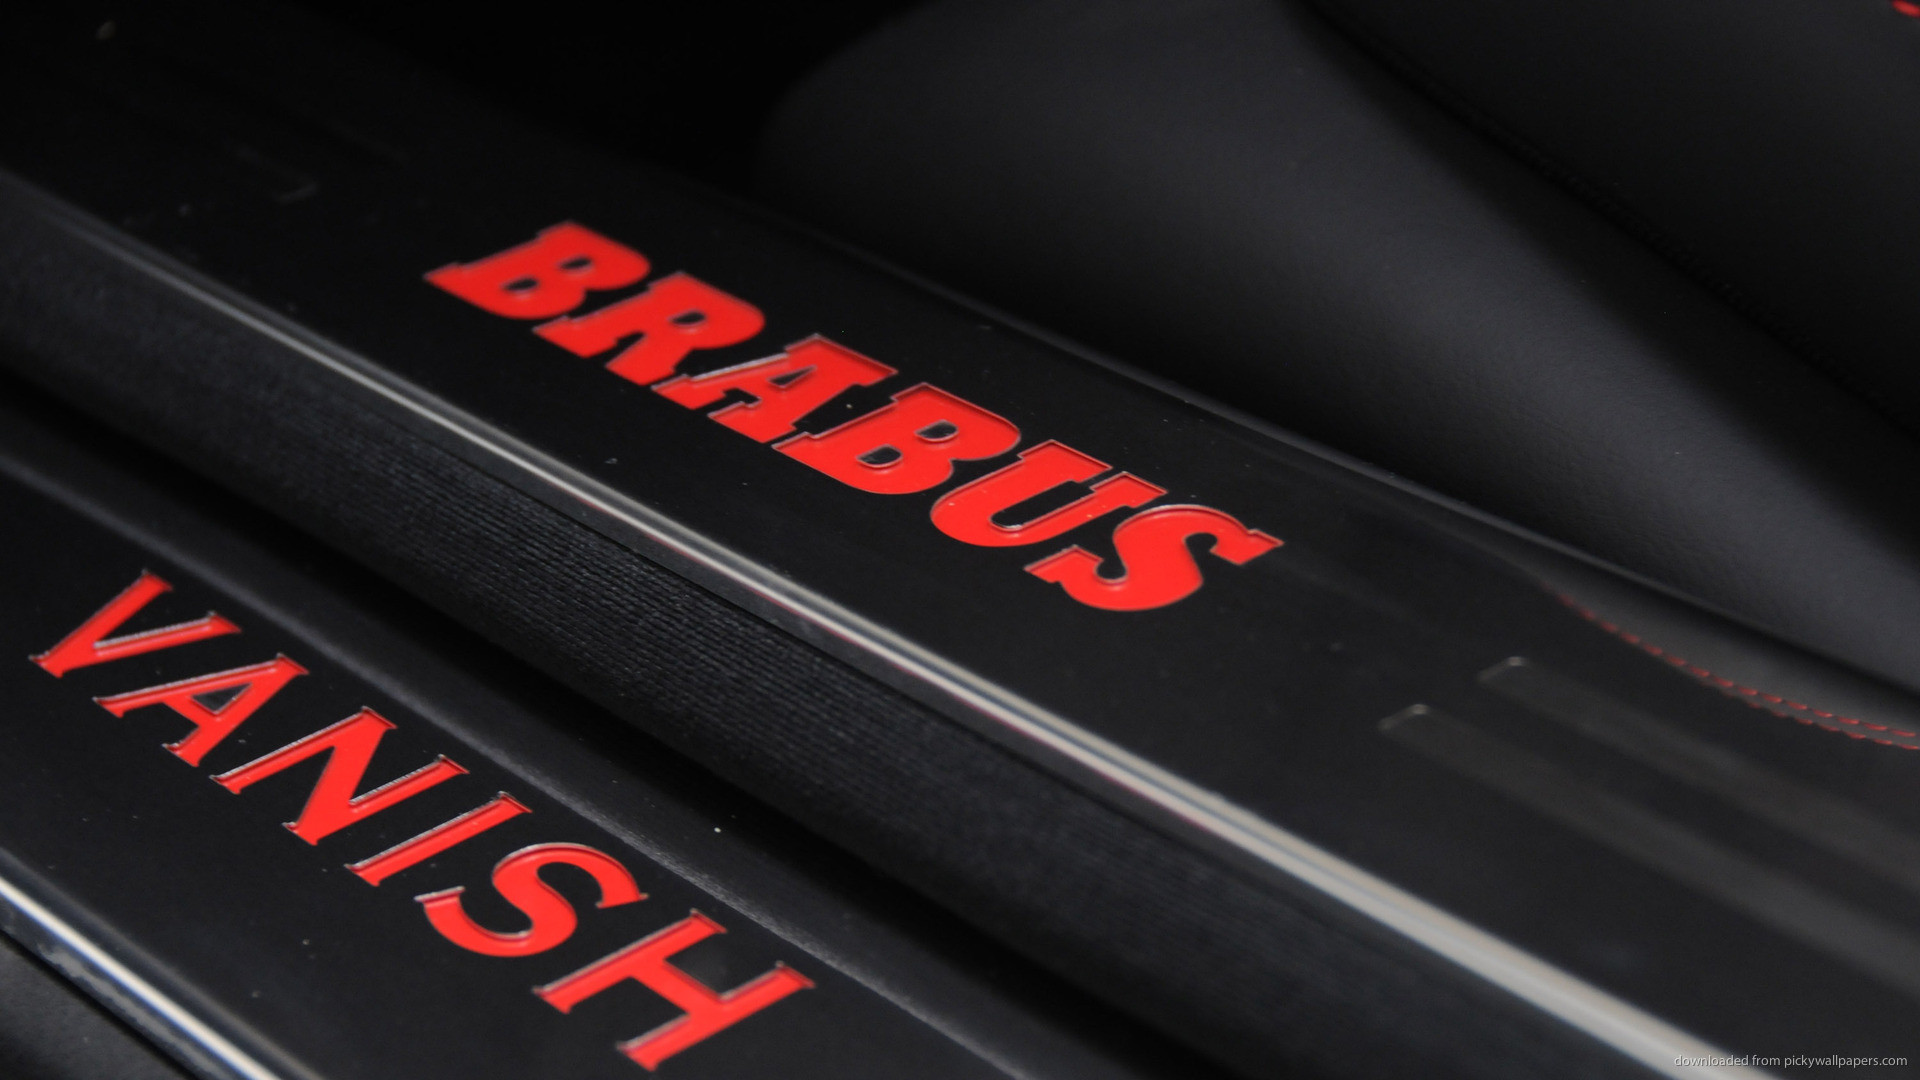 Brabus T65 RS Mercedes-Benz SL 65 AMG Black Series Badge picture